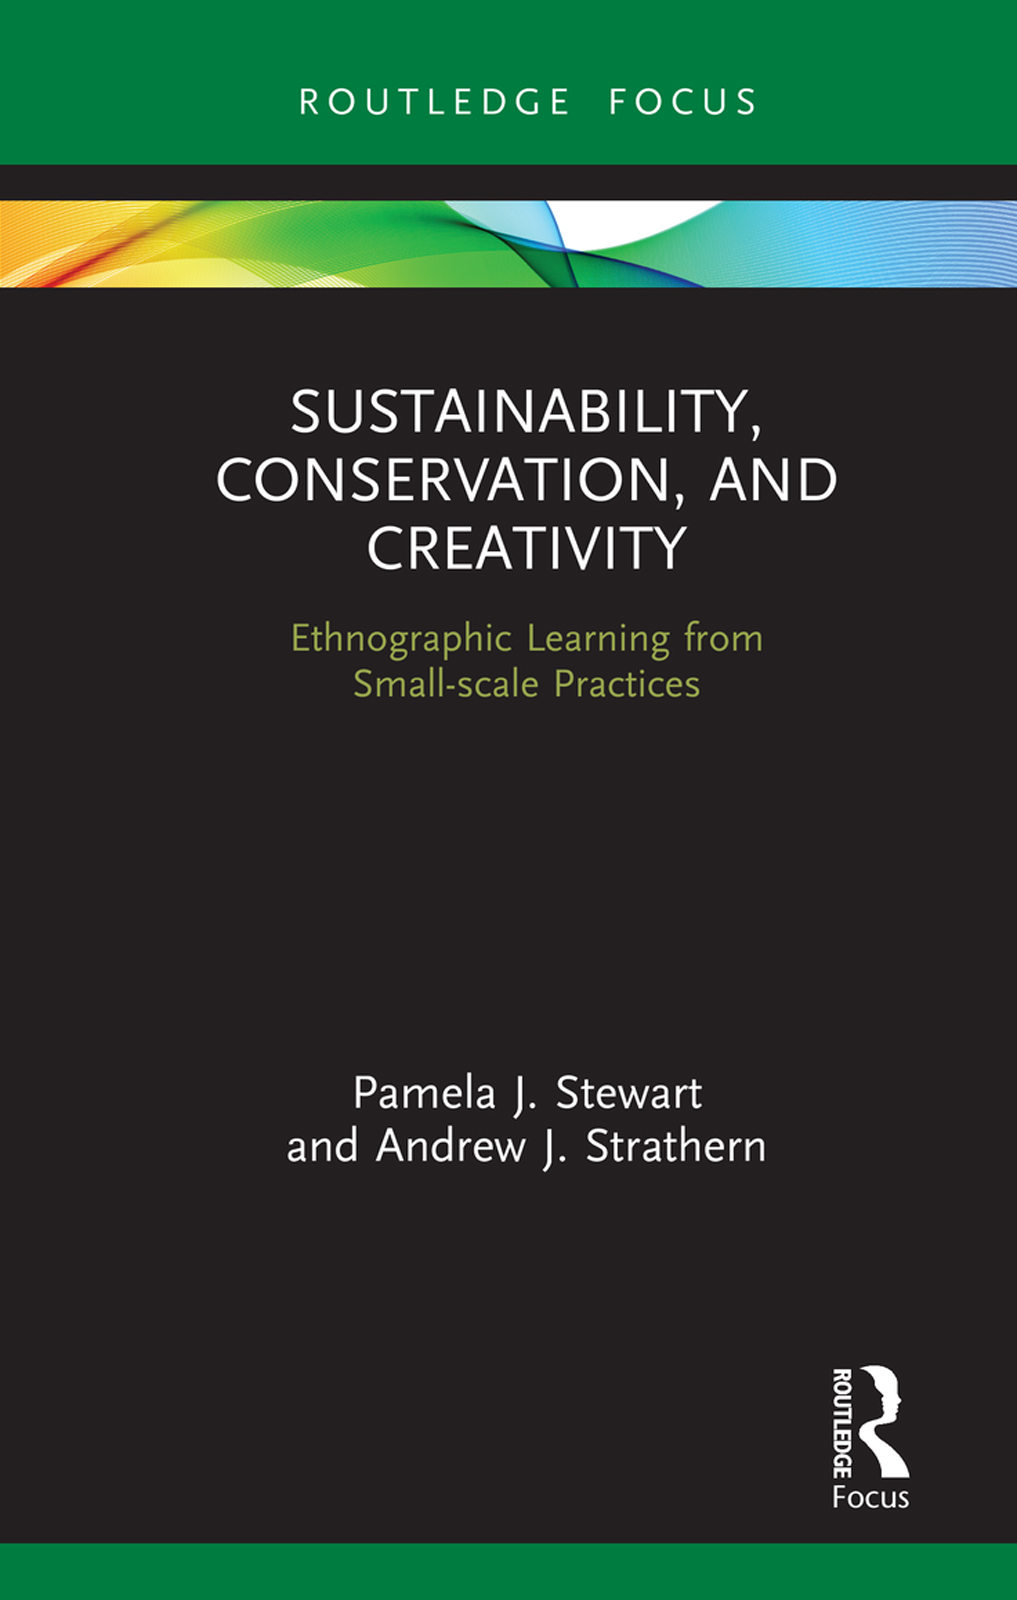 Sustainability, Conservation, and Creativity: Ethnographic Learning from Small-scale Practices book cover